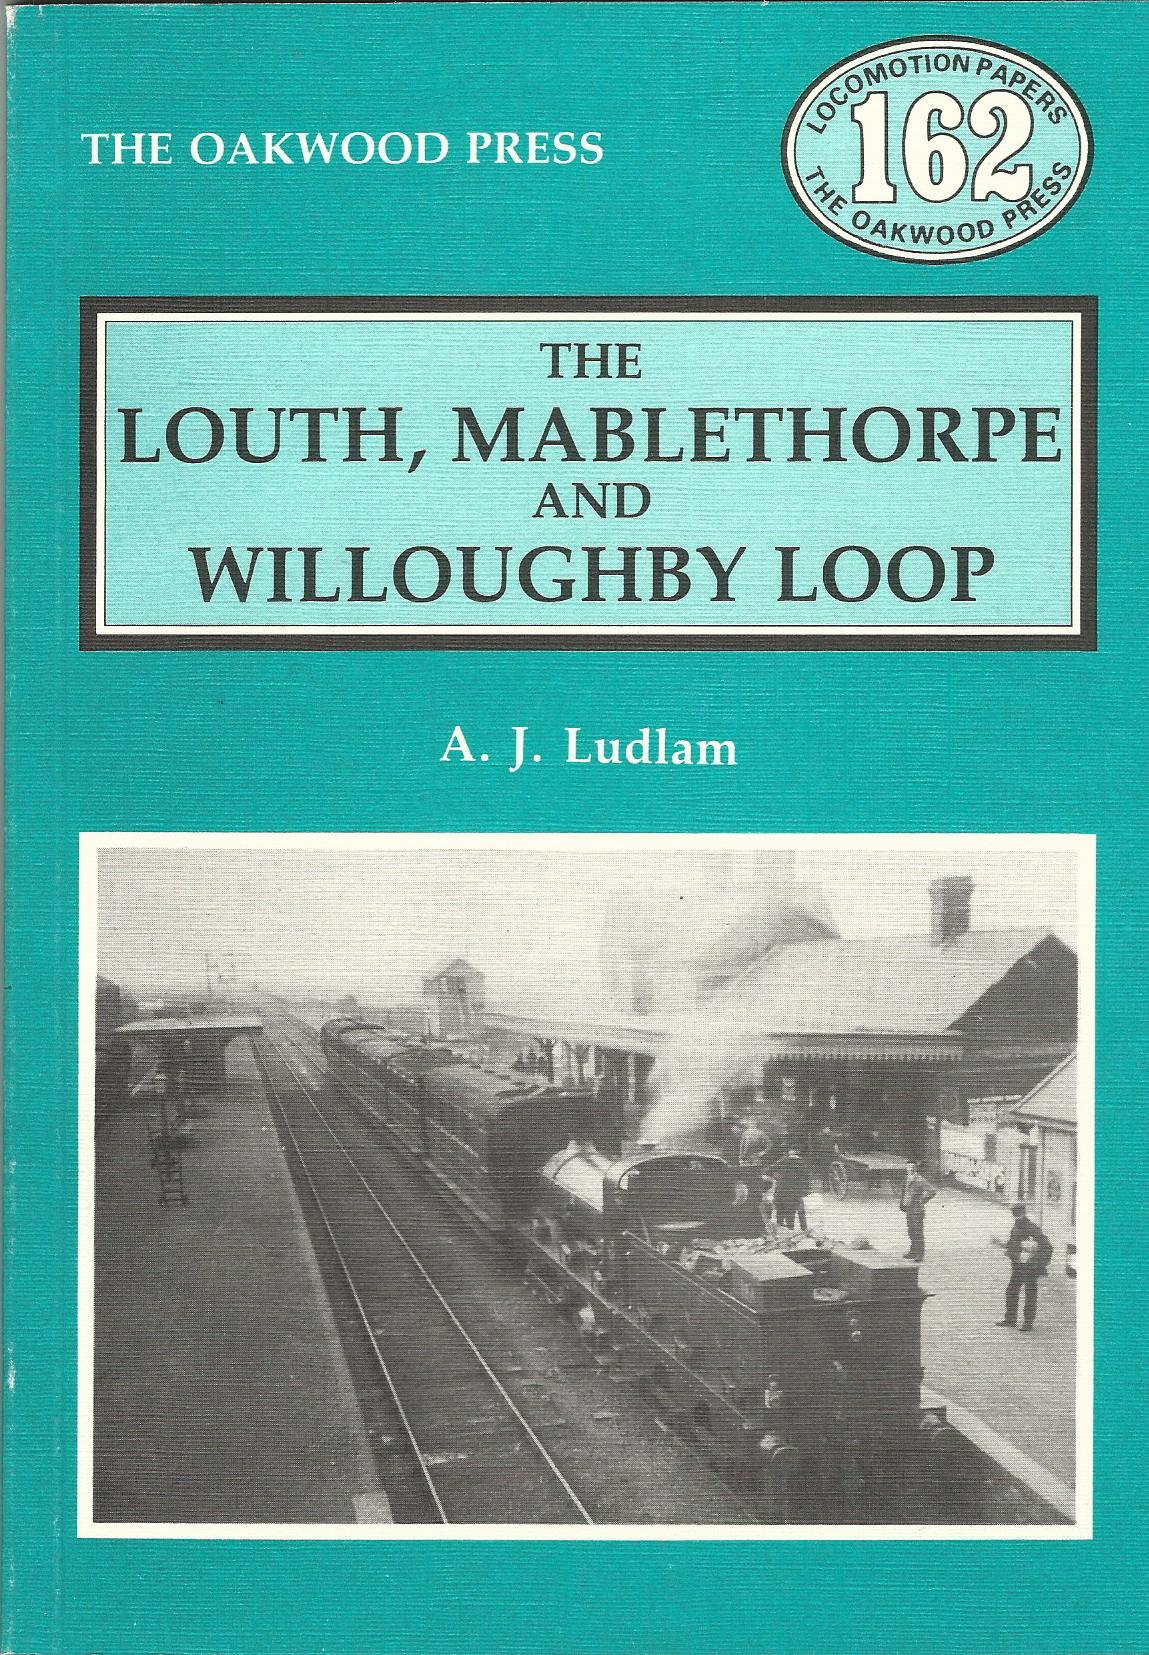 Image for Louth, Mablethorpe and Willoughby Loop (Locomotion Papers)